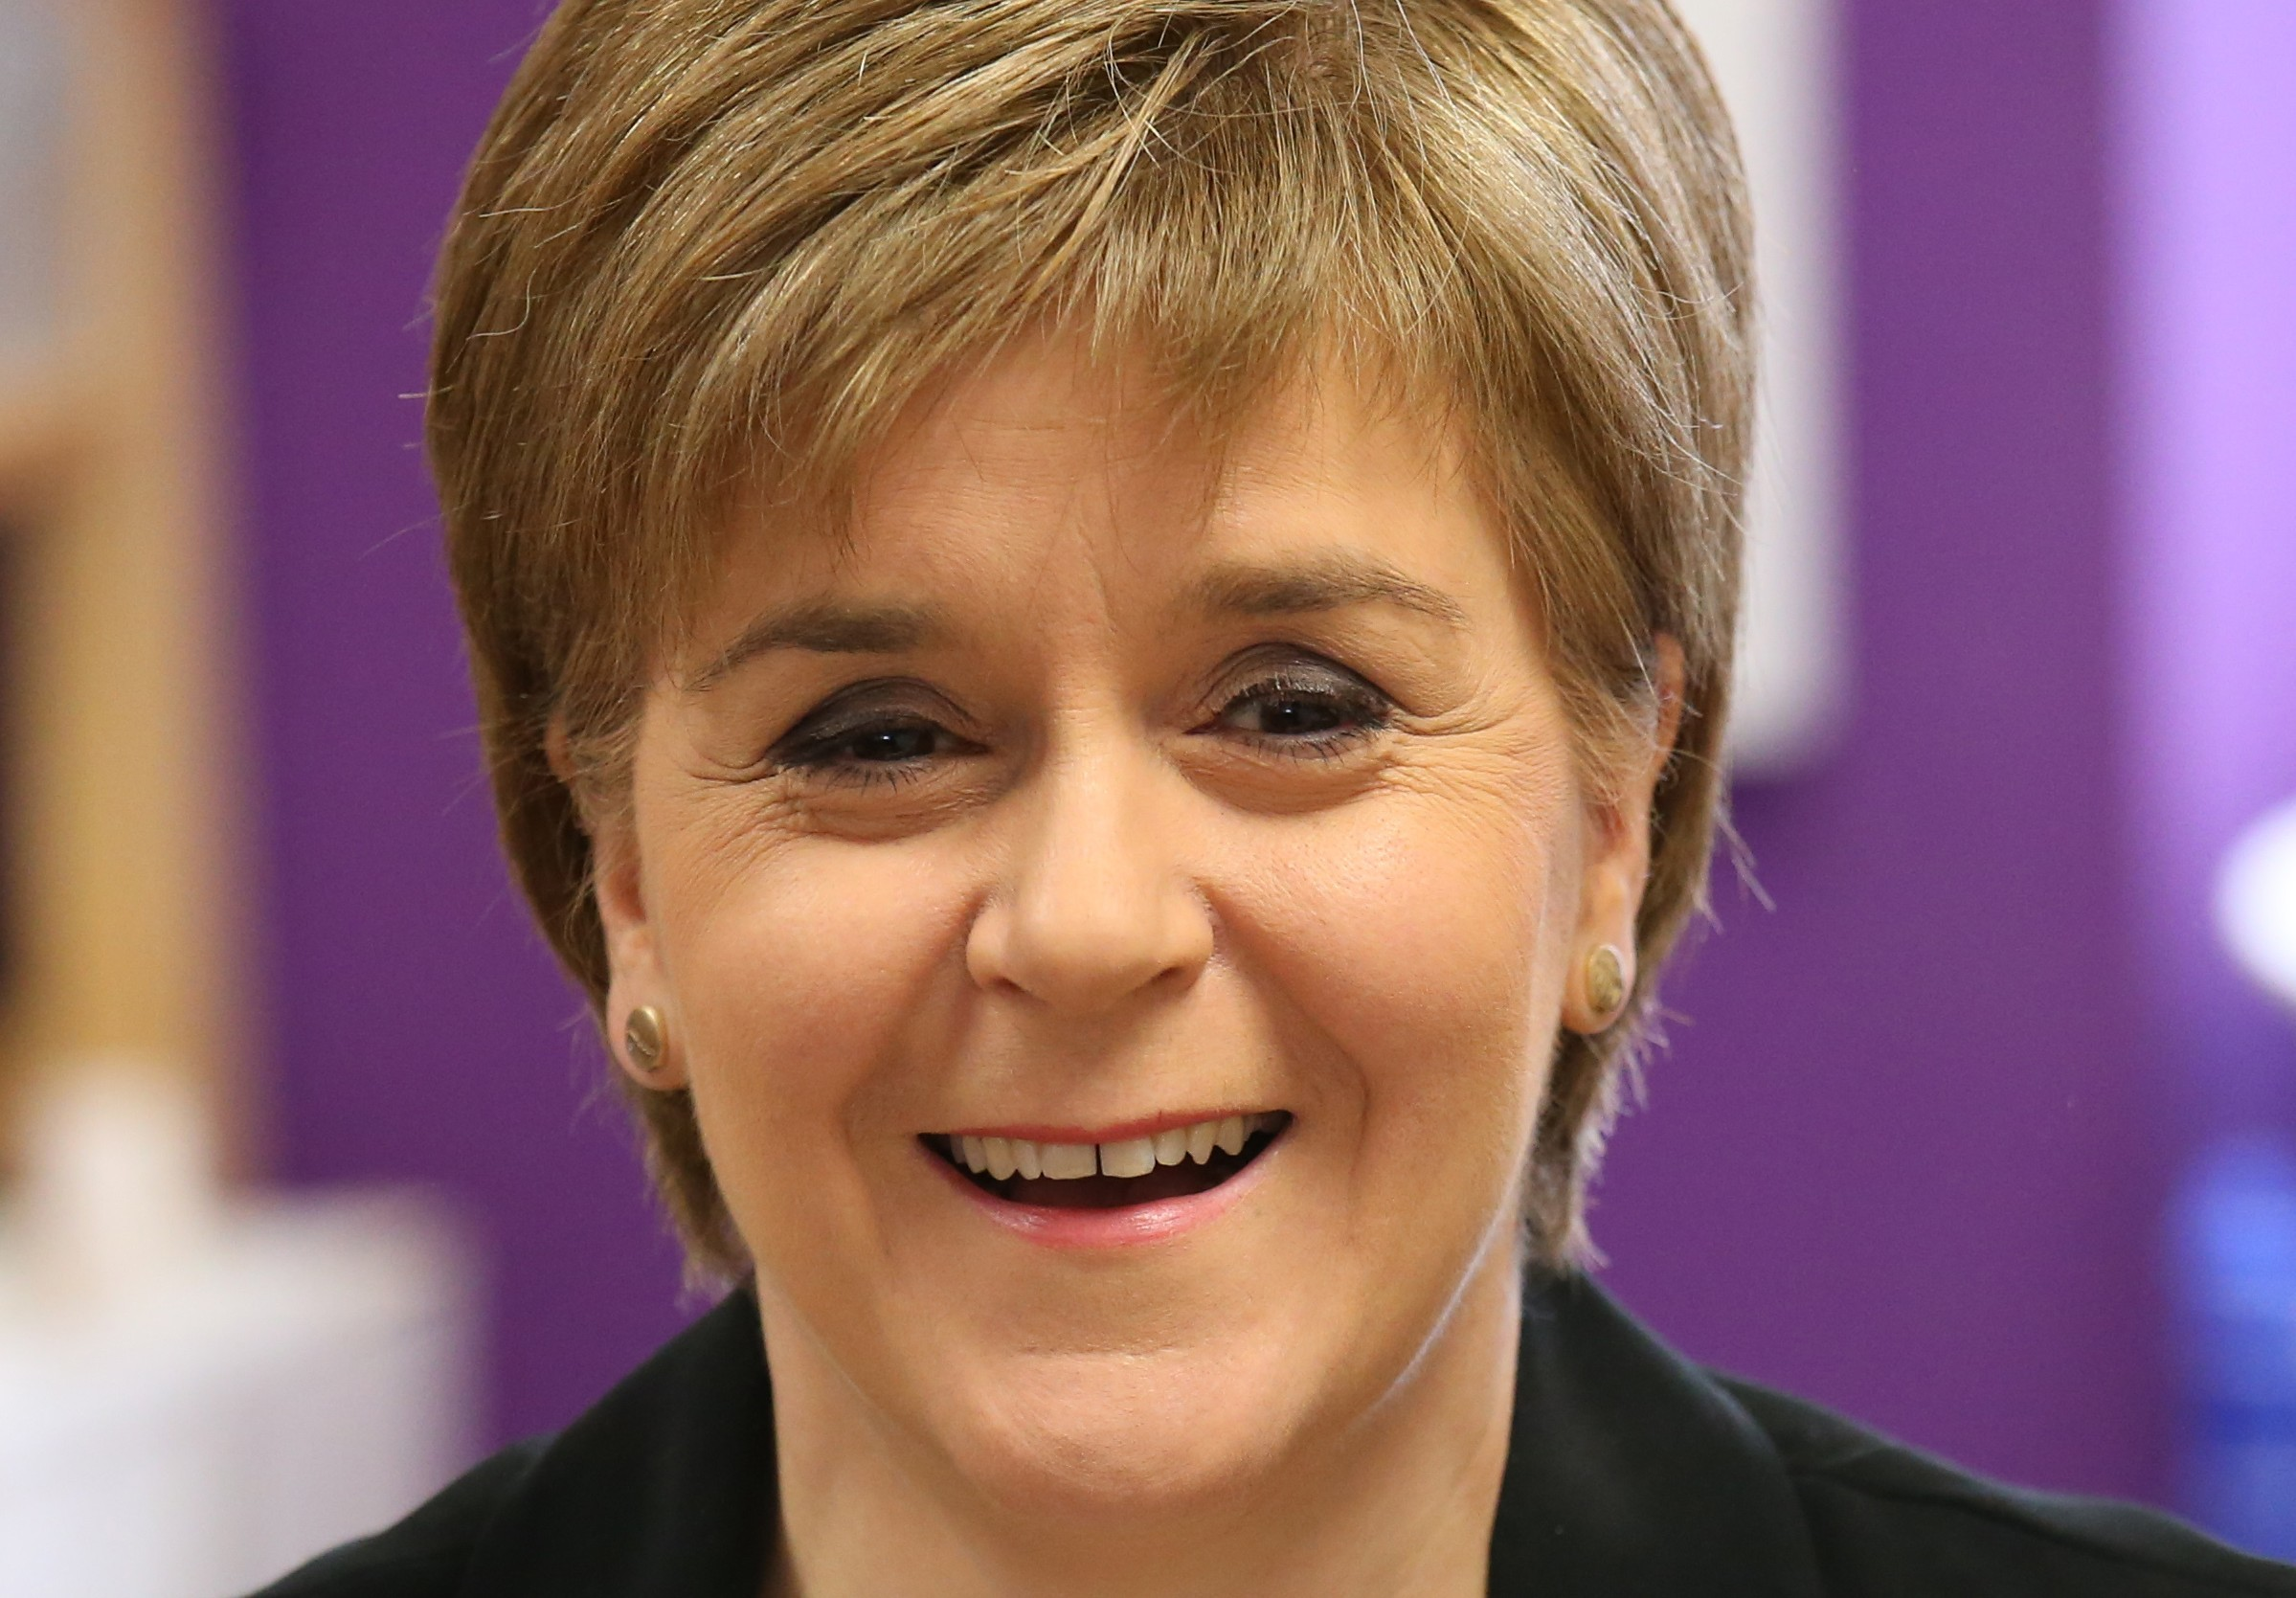 SNP leader Nicola Sturgeon.